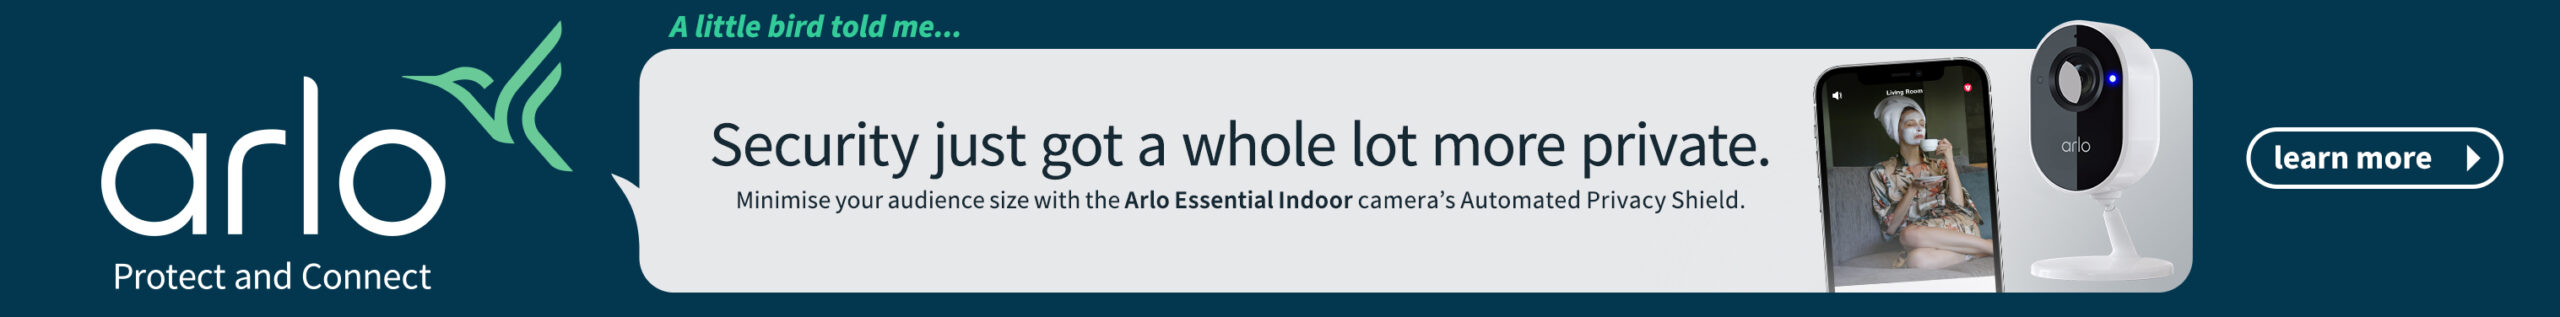 ARL0355 Arlo ESS Indoor Generic Banner 728x90 V4 scaled Samsung Kicks Apples Arse Big Time